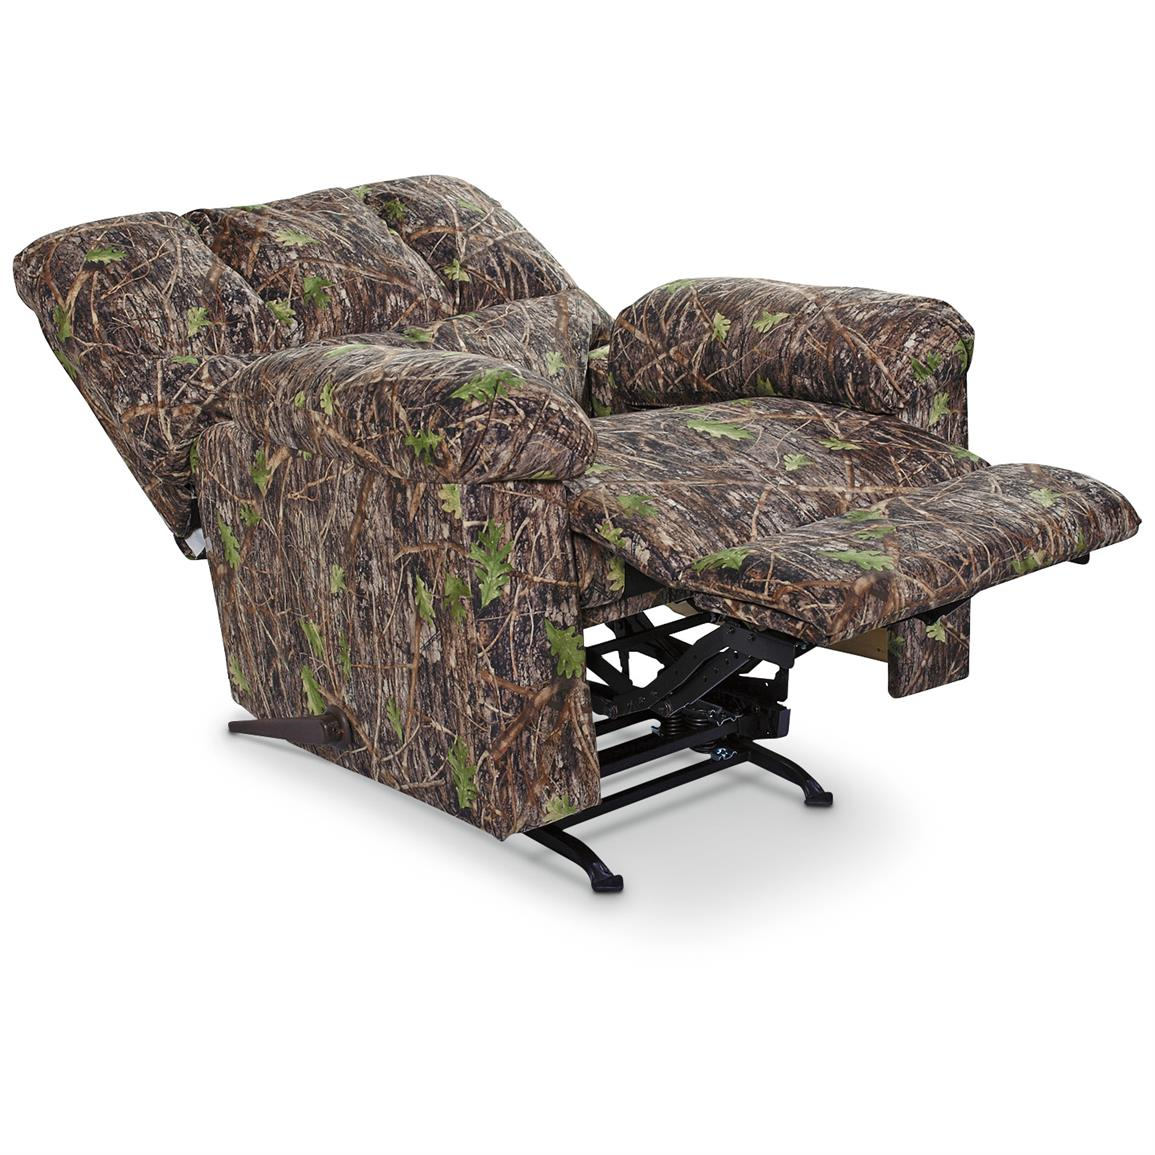 Kick back and relax with full recline